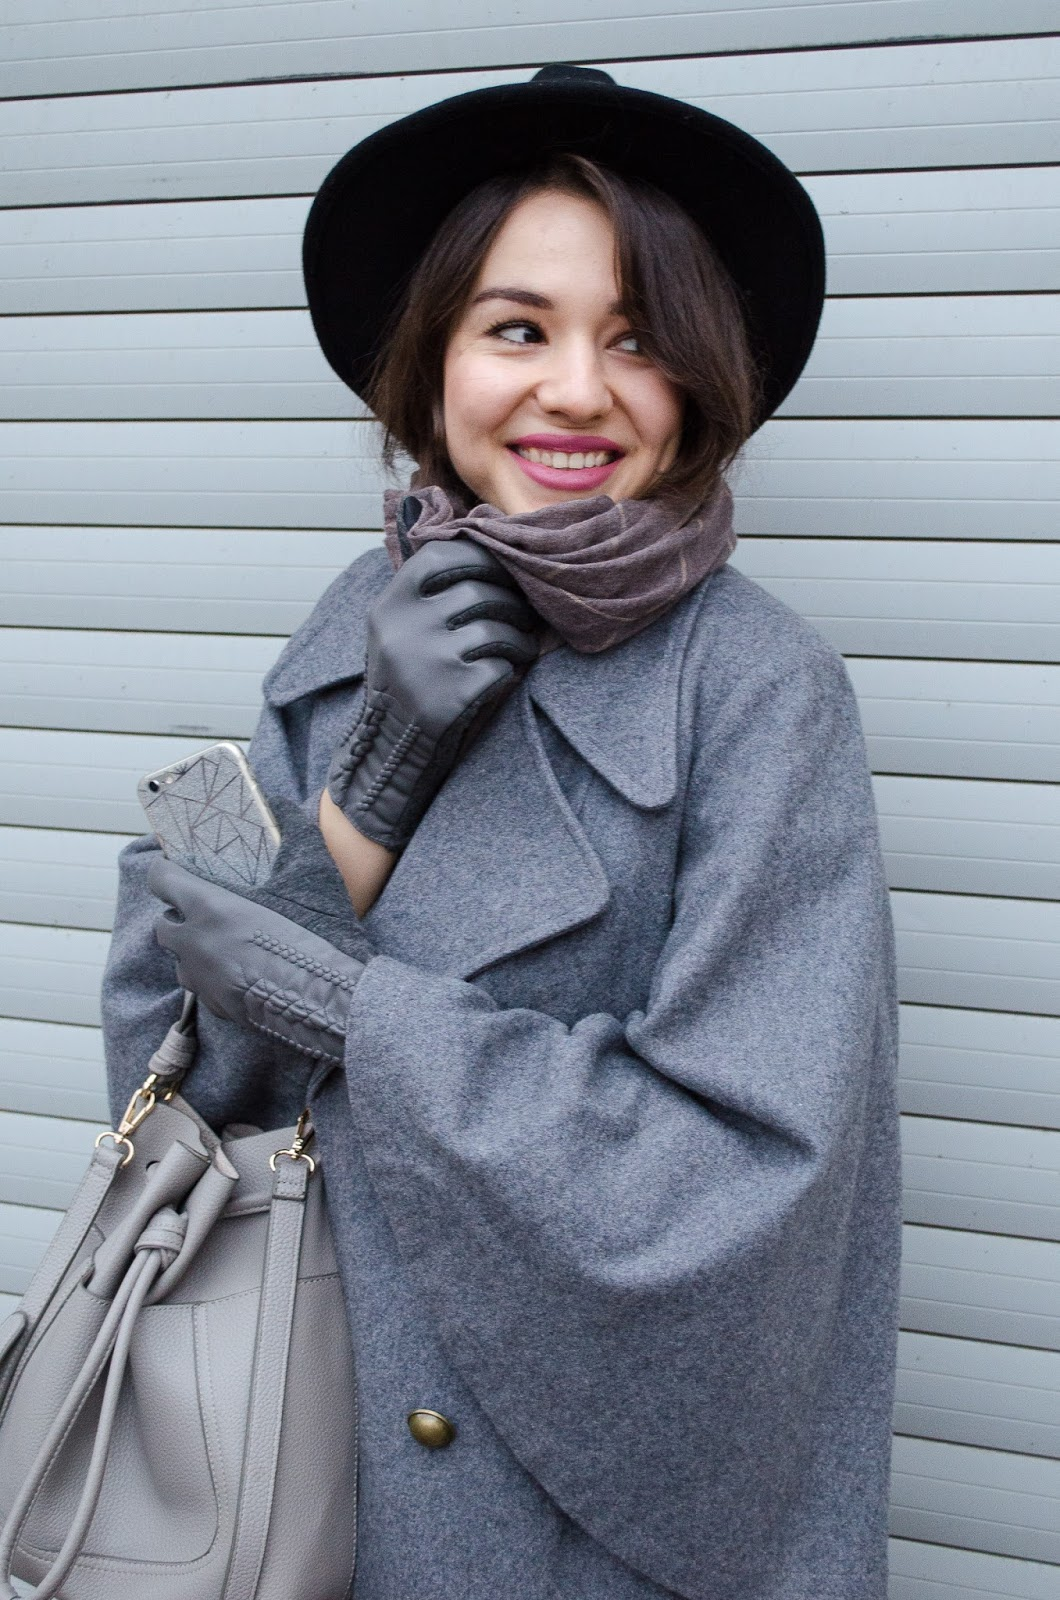 fashion bloger diyorasnotes diyora beta total grey outfit dandy hat